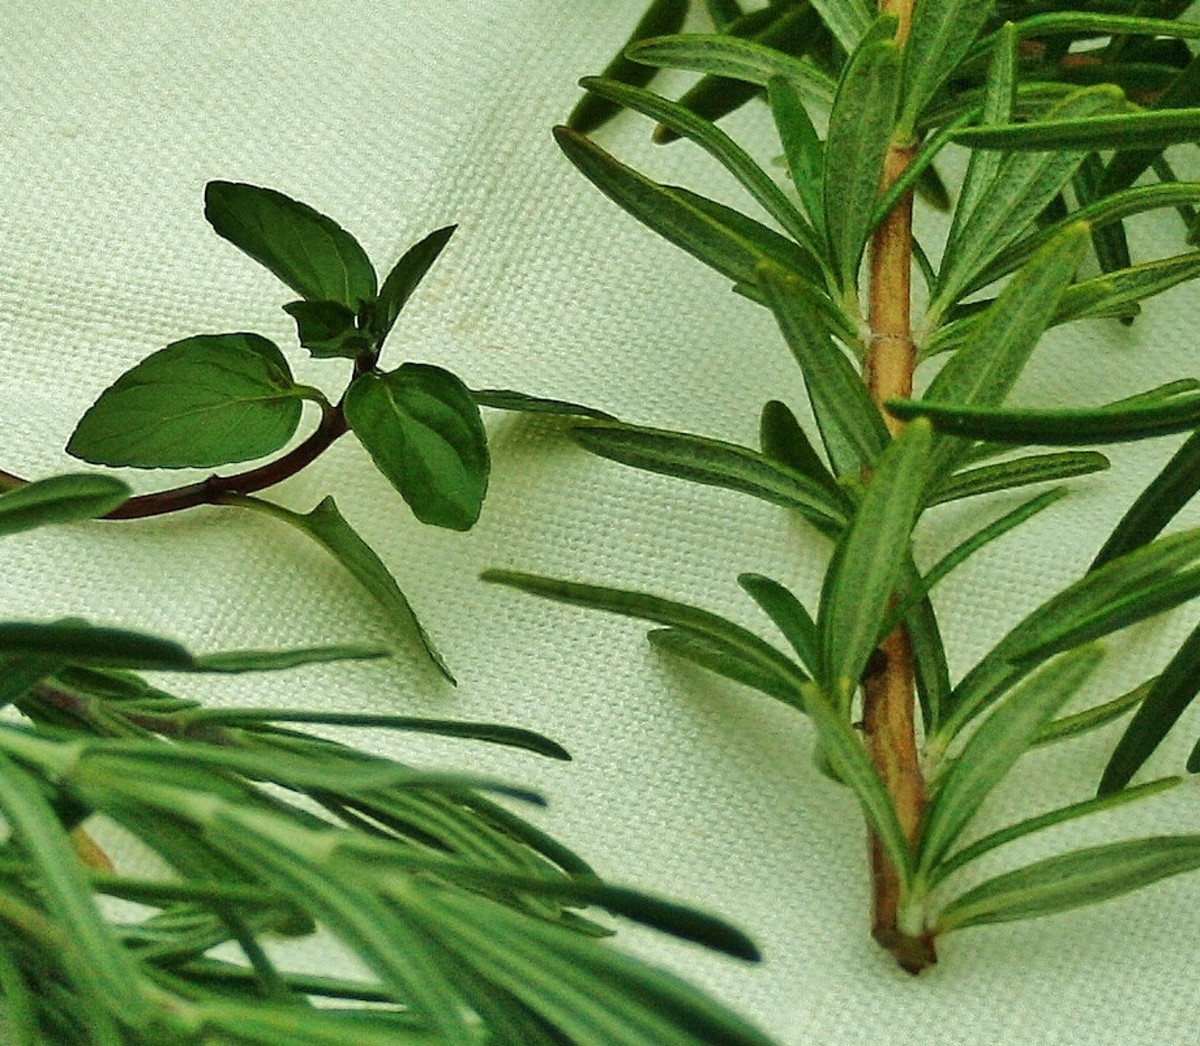 All sorts of herbs may be added to oil and vinegar. Pictured (left to right): lavender, chocolate mint, rosemary.